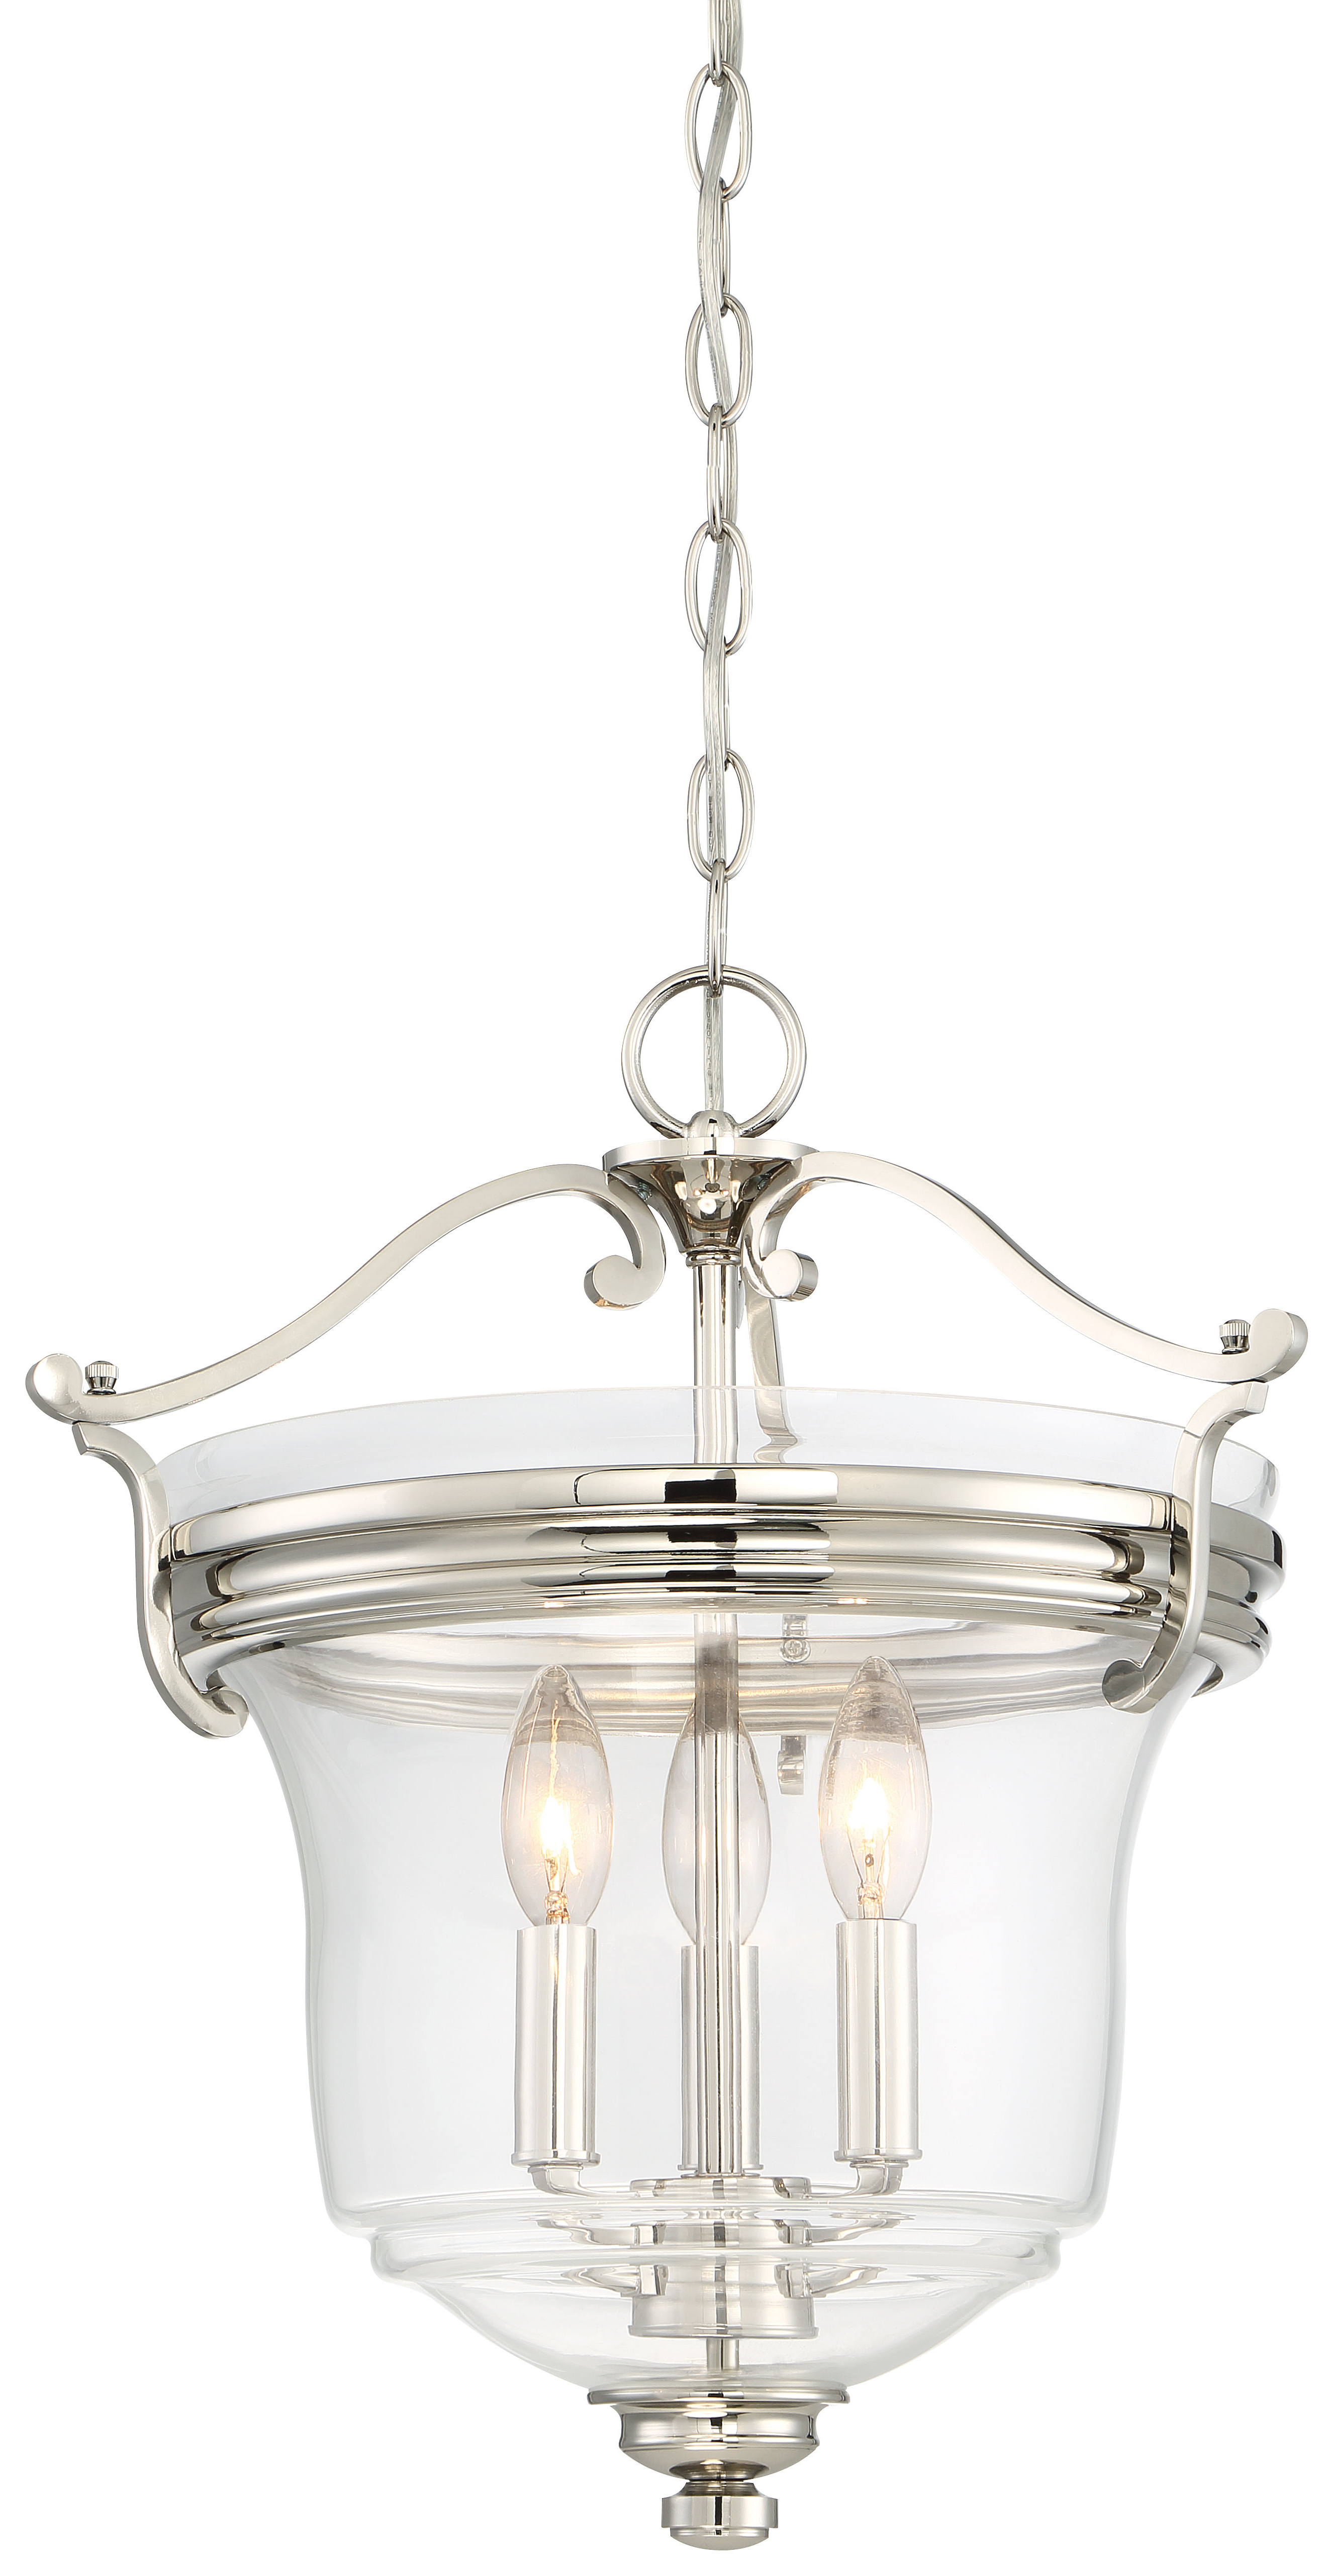 Well Liked 3 Light Single Urn Pendants Within Ameche 3 Light Single Urn Pendant (View 18 of 20)